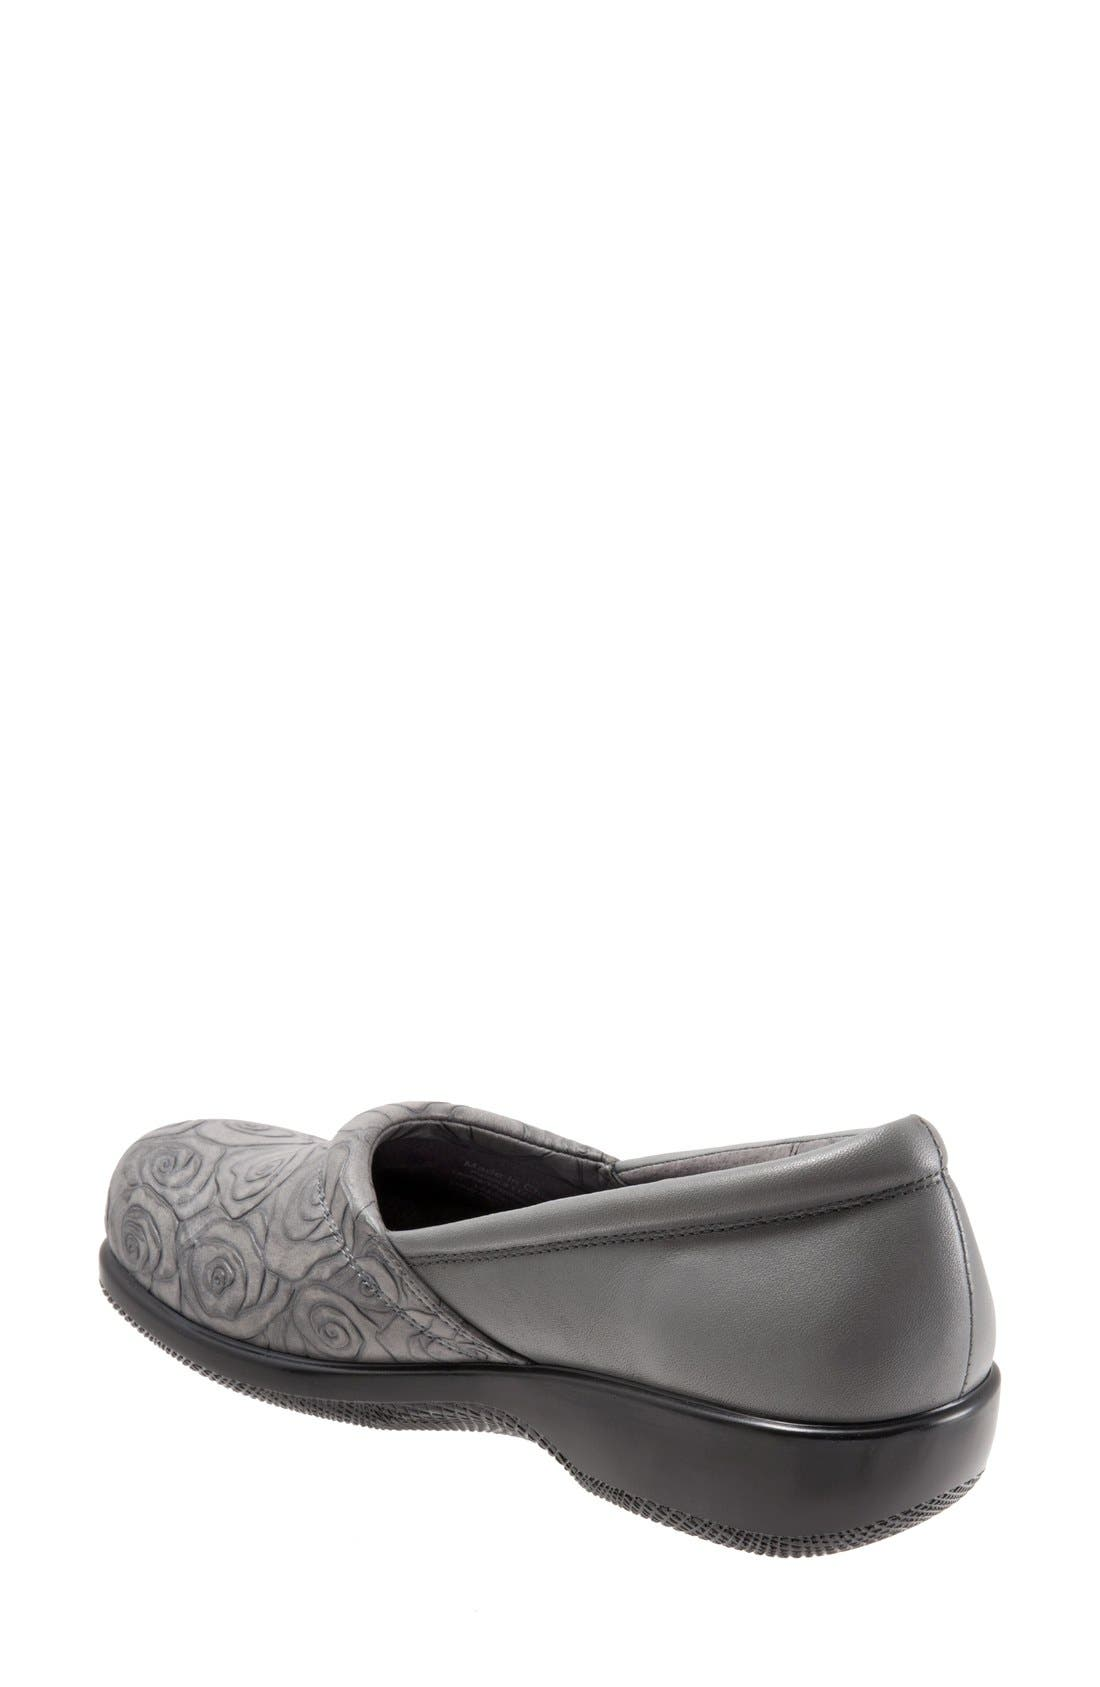 'Adora' Slip-On,                             Alternate thumbnail 2, color,                             GREY ROSE LEATHER